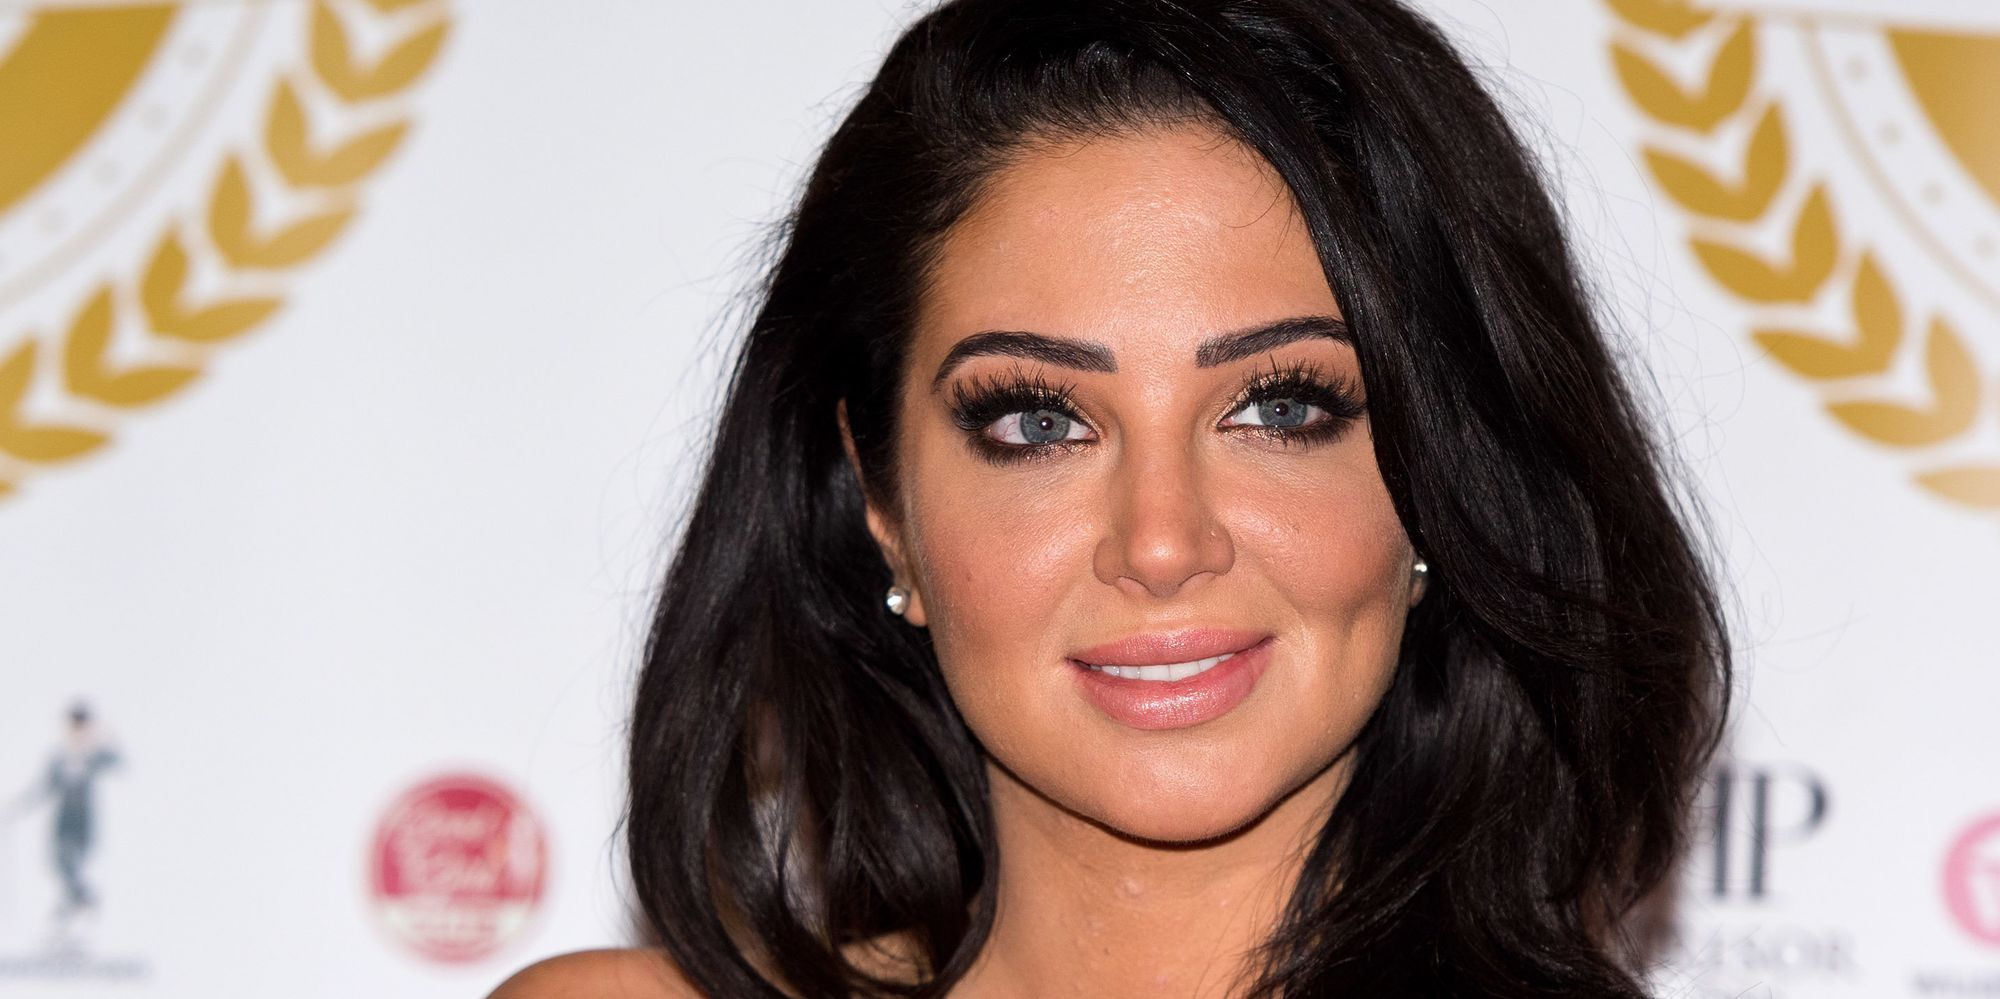 An image of Tulisa.